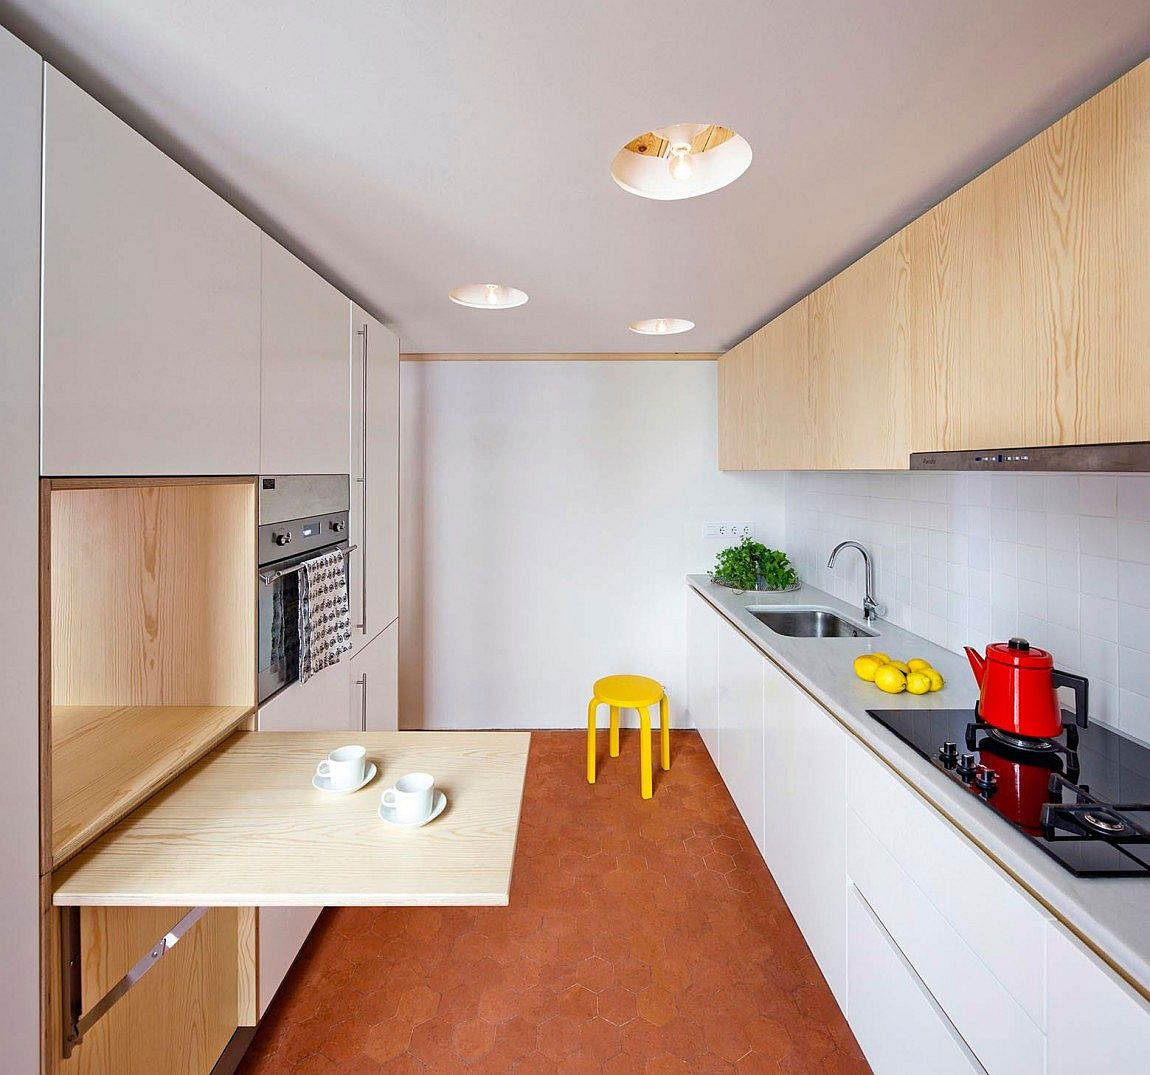 Smart kitchen deisgn for a small apartment acts as a distinct, standalone cabin space